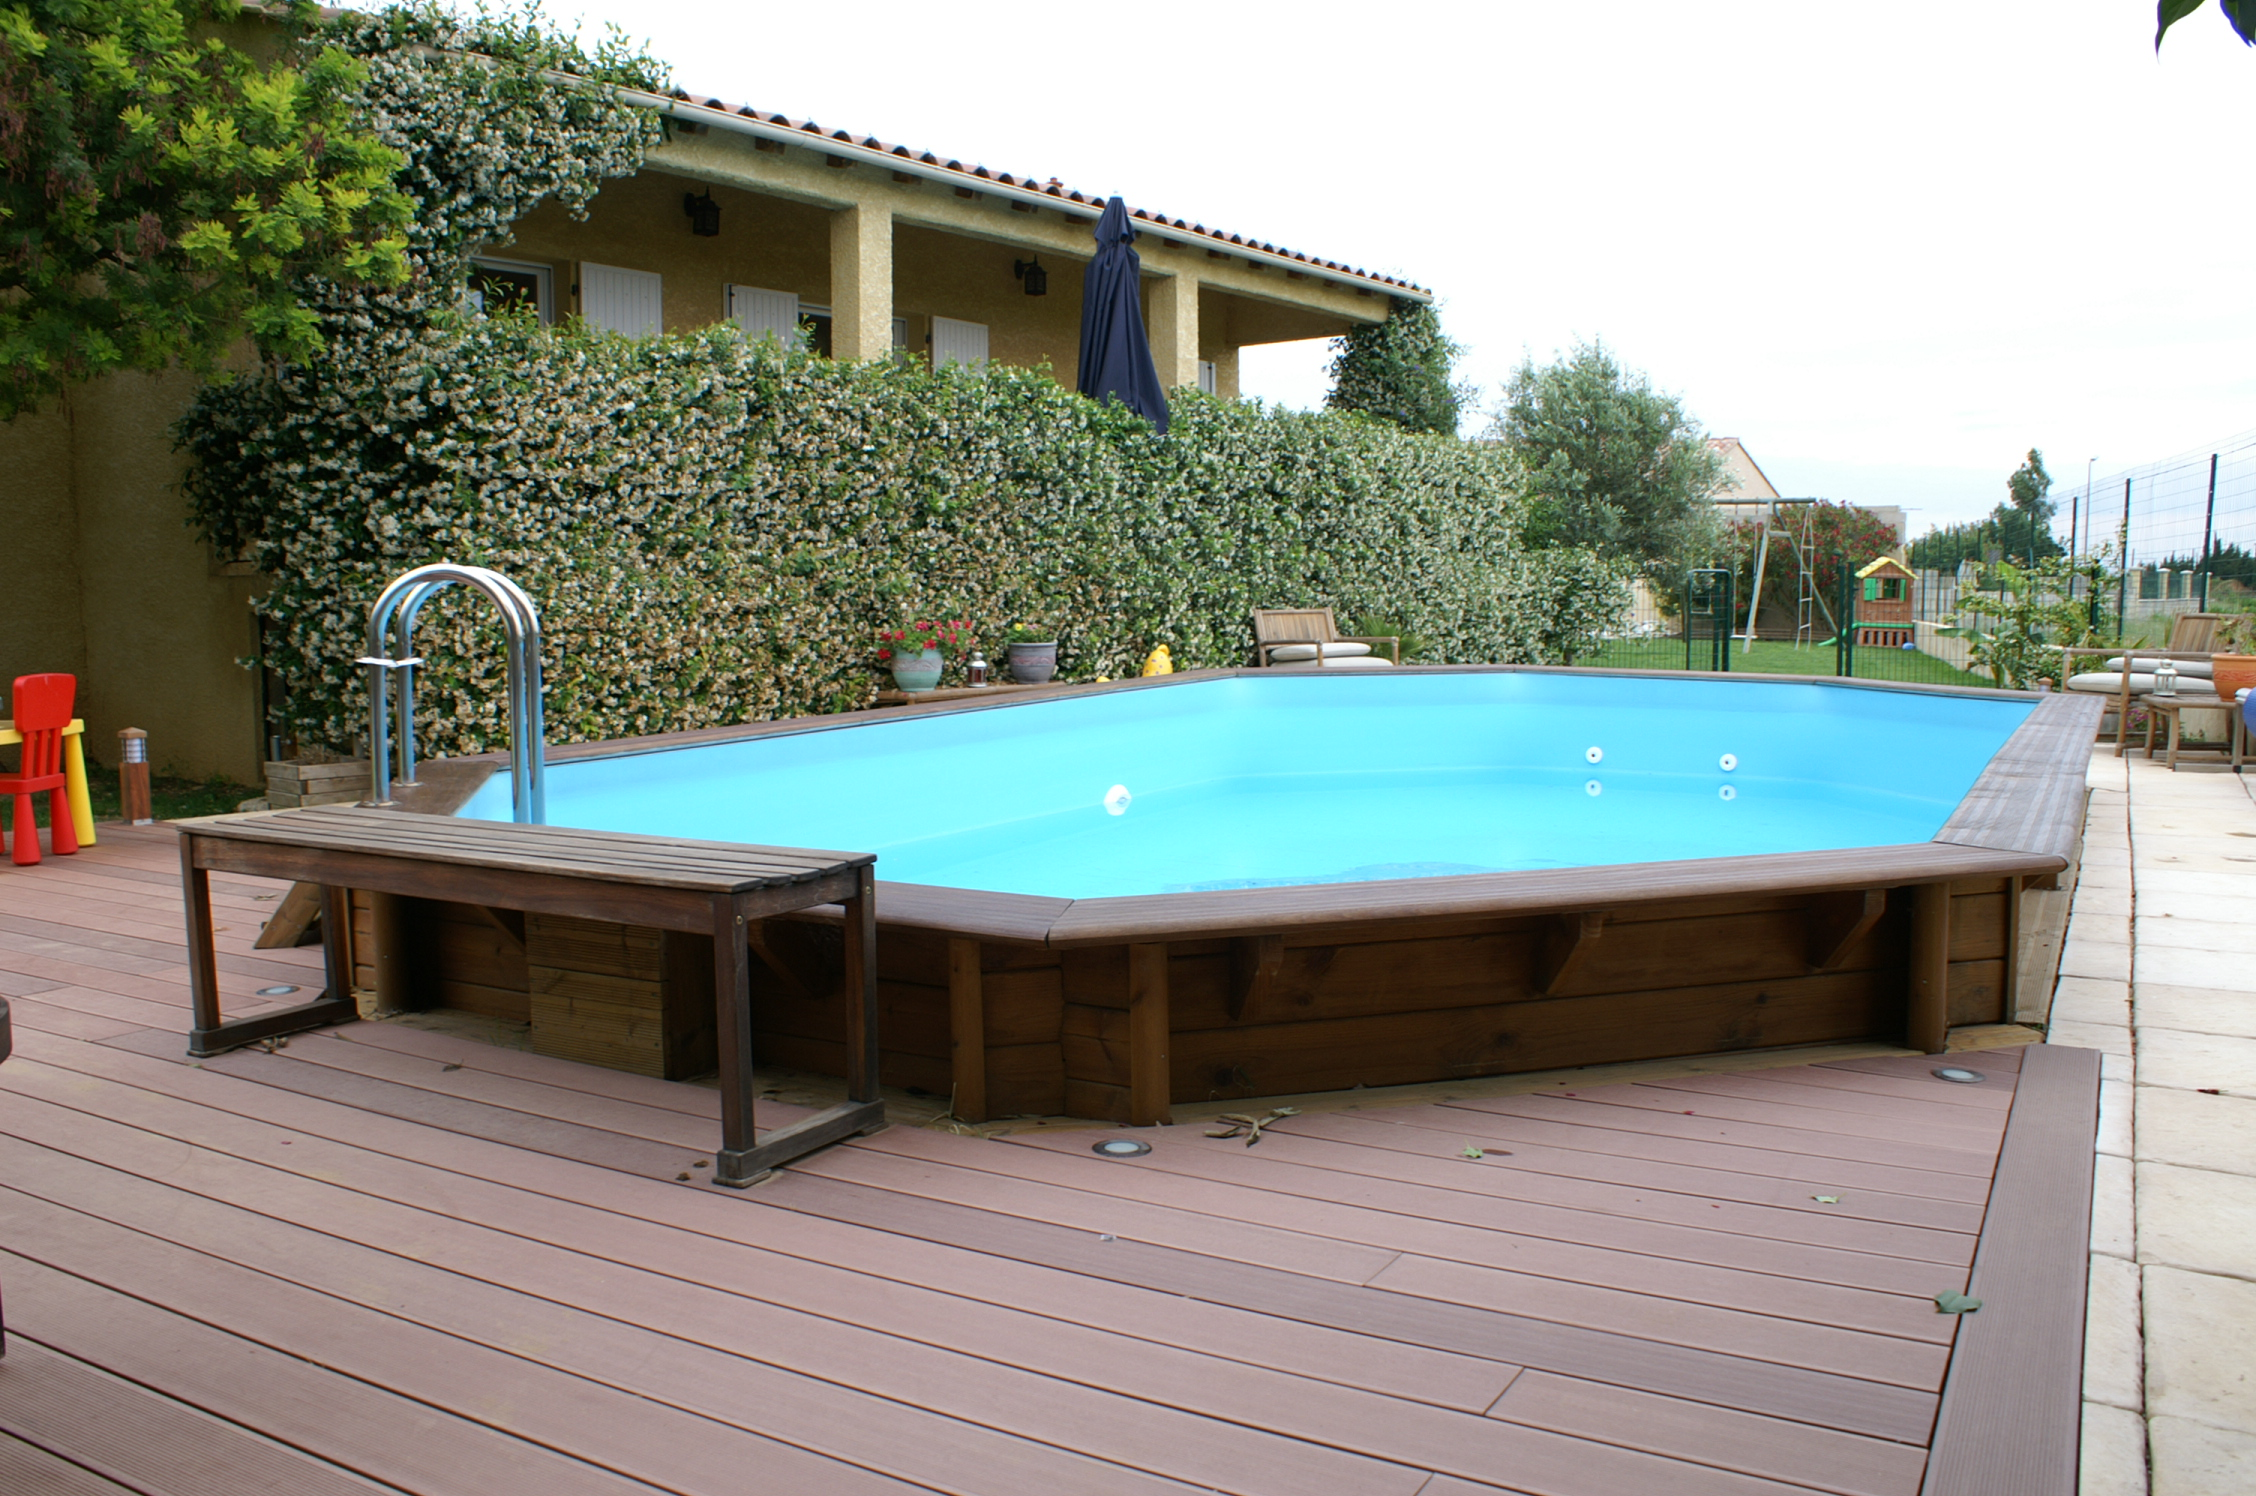 Construction piscines nimes gepad piscines et spa 30000 for Piscine hors sol amenagee